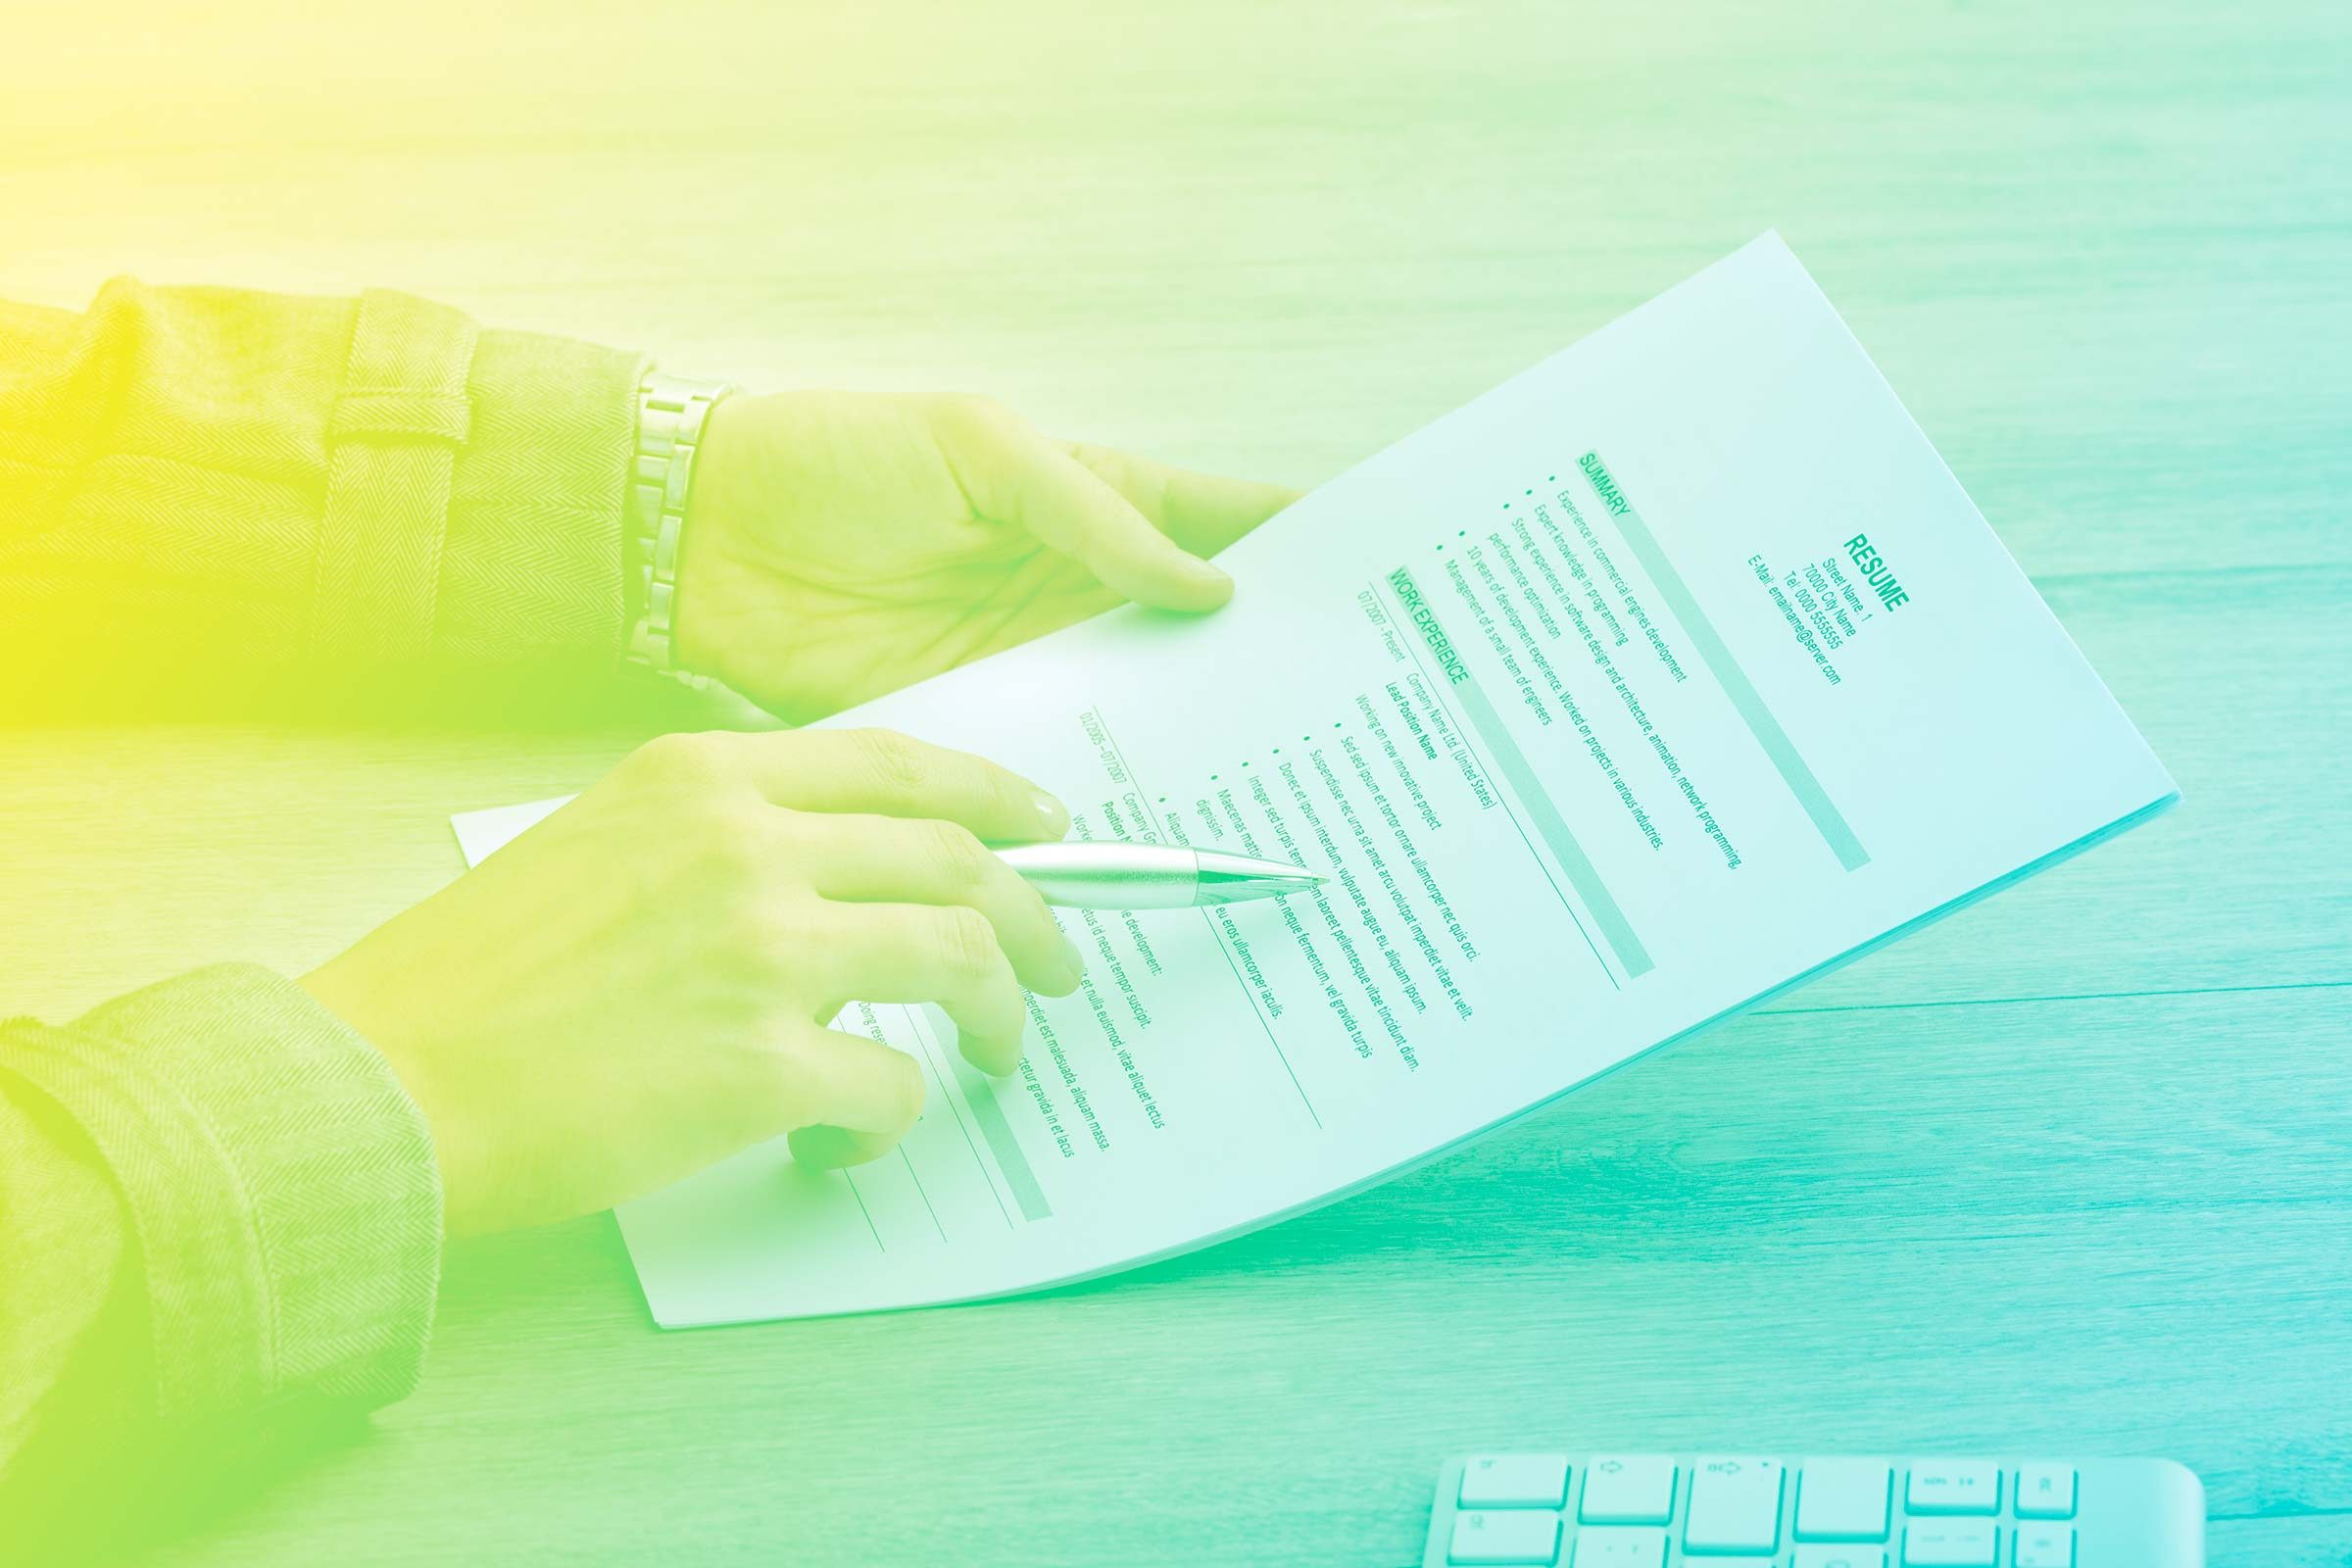 Resume Mistakes that Could Cost You the Job Readers Digest